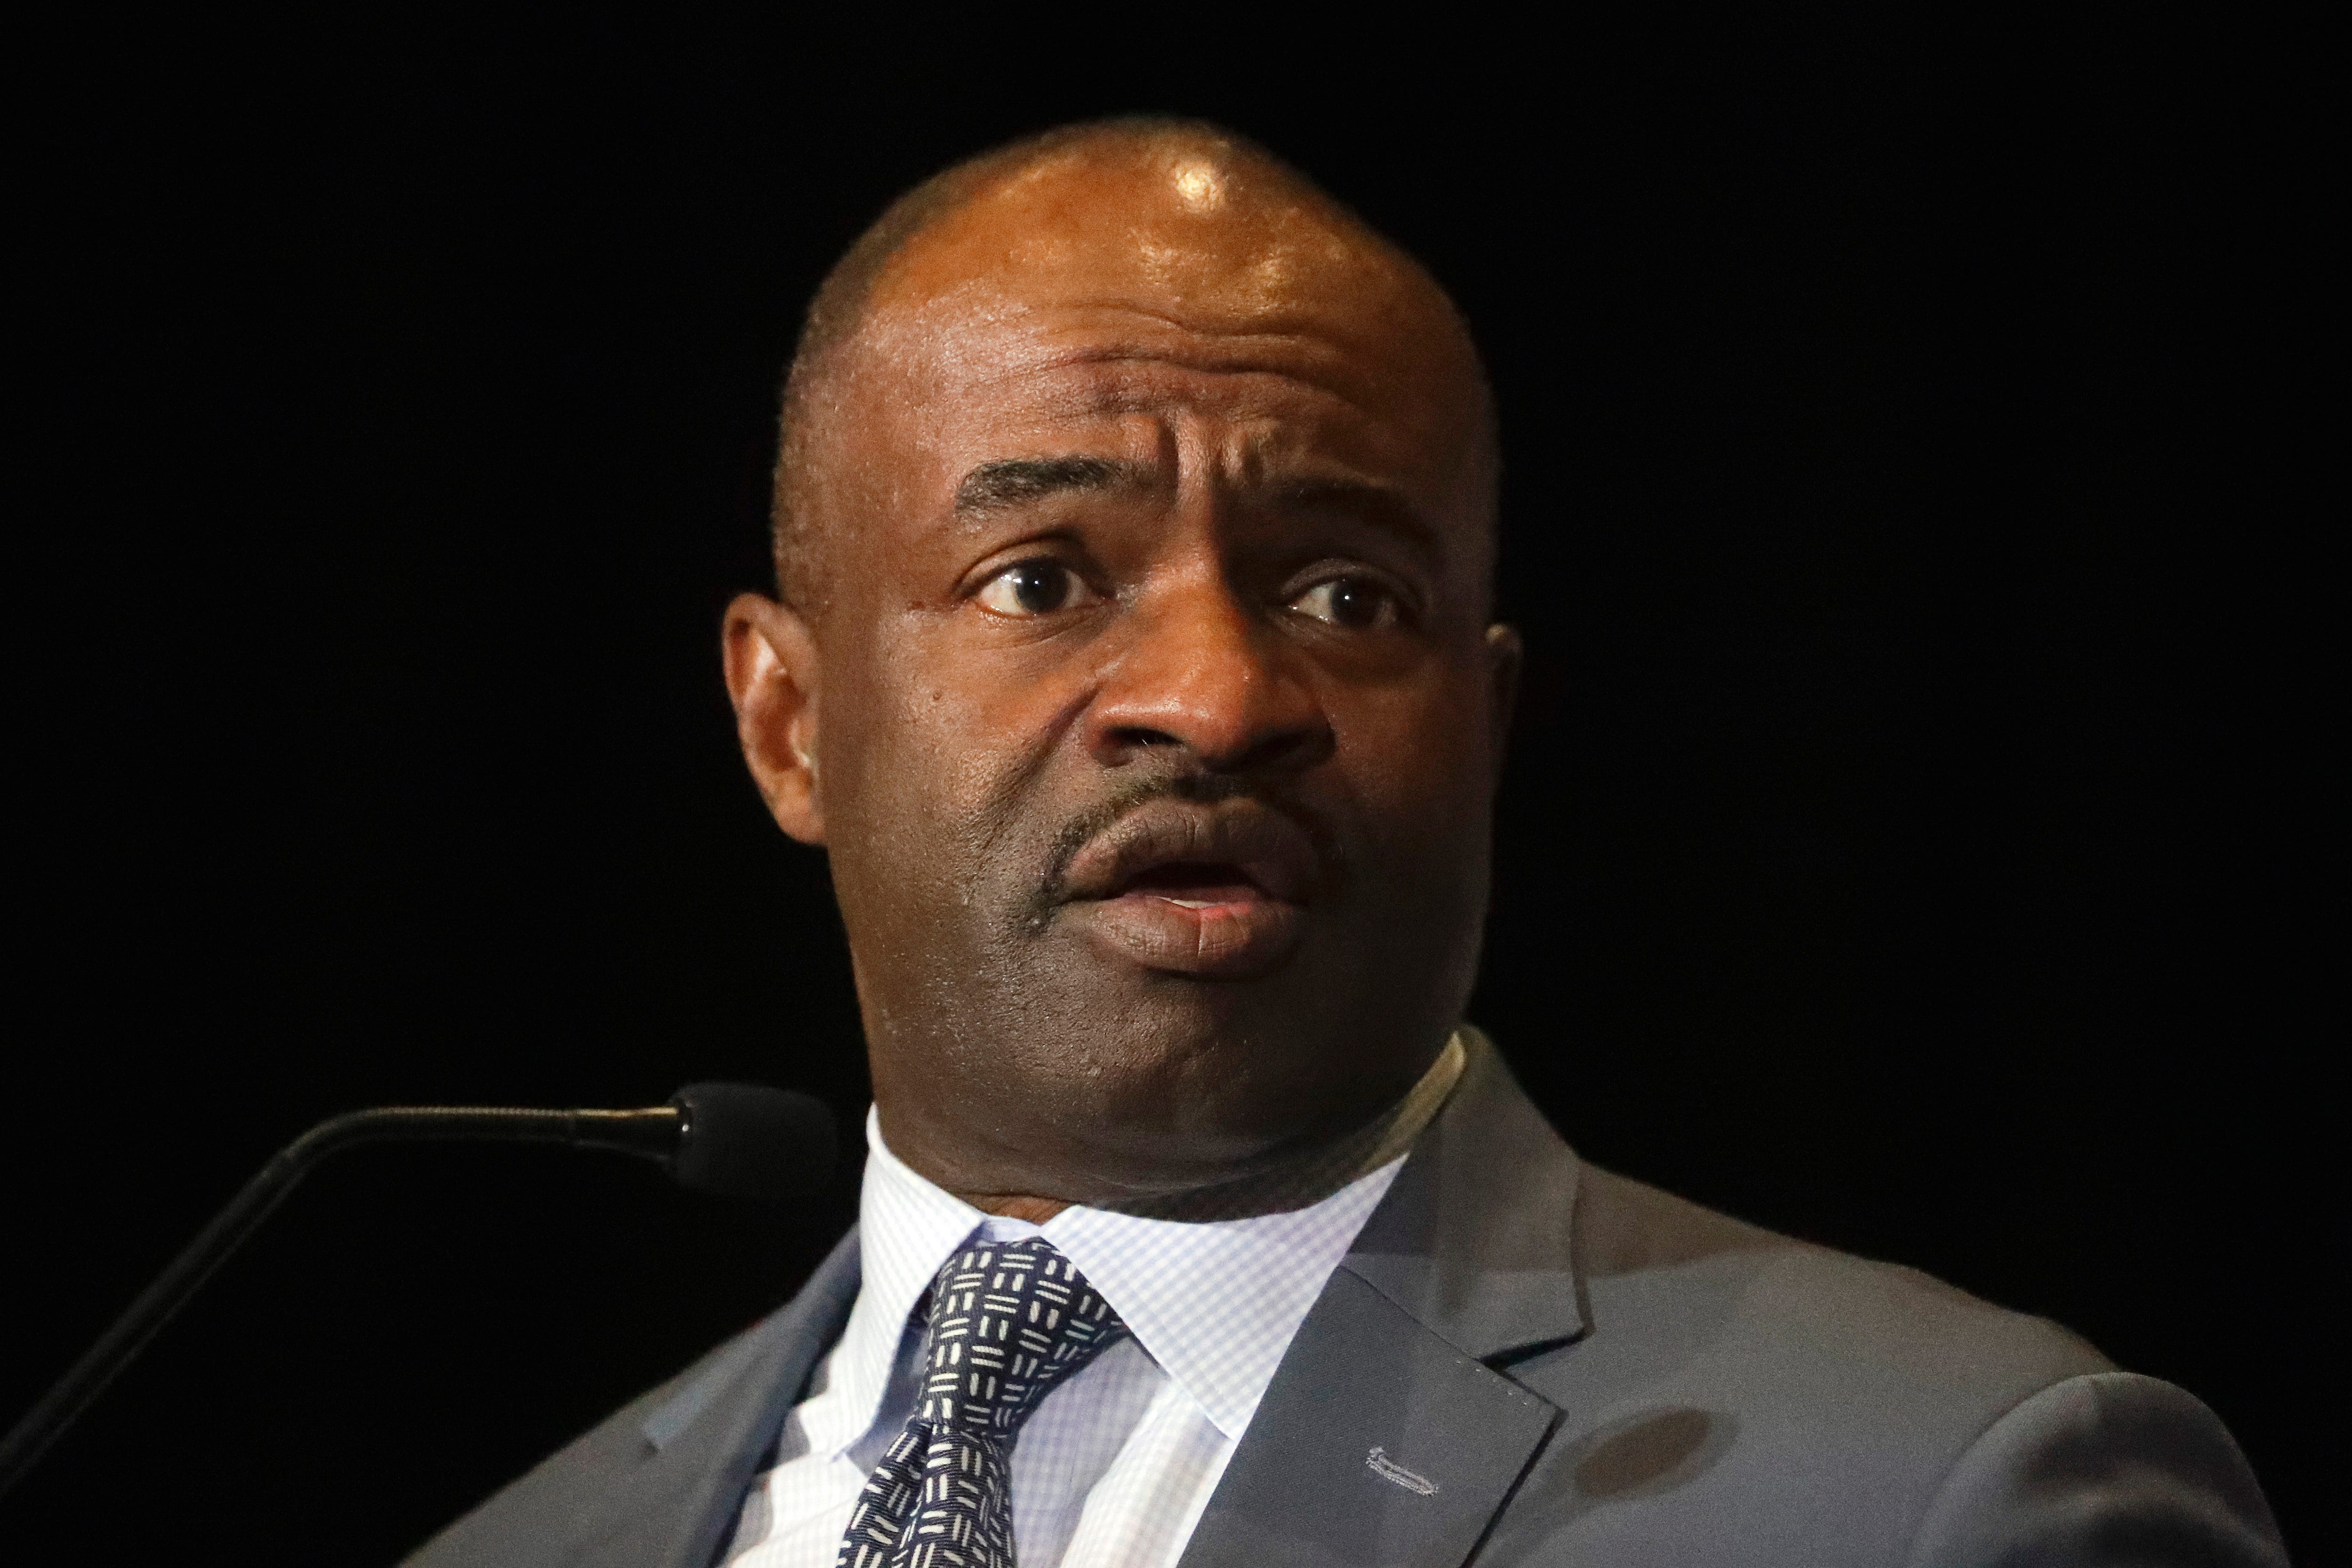 DeMaurice Smith opens up on Jon Gruden, racism in the NFL and more